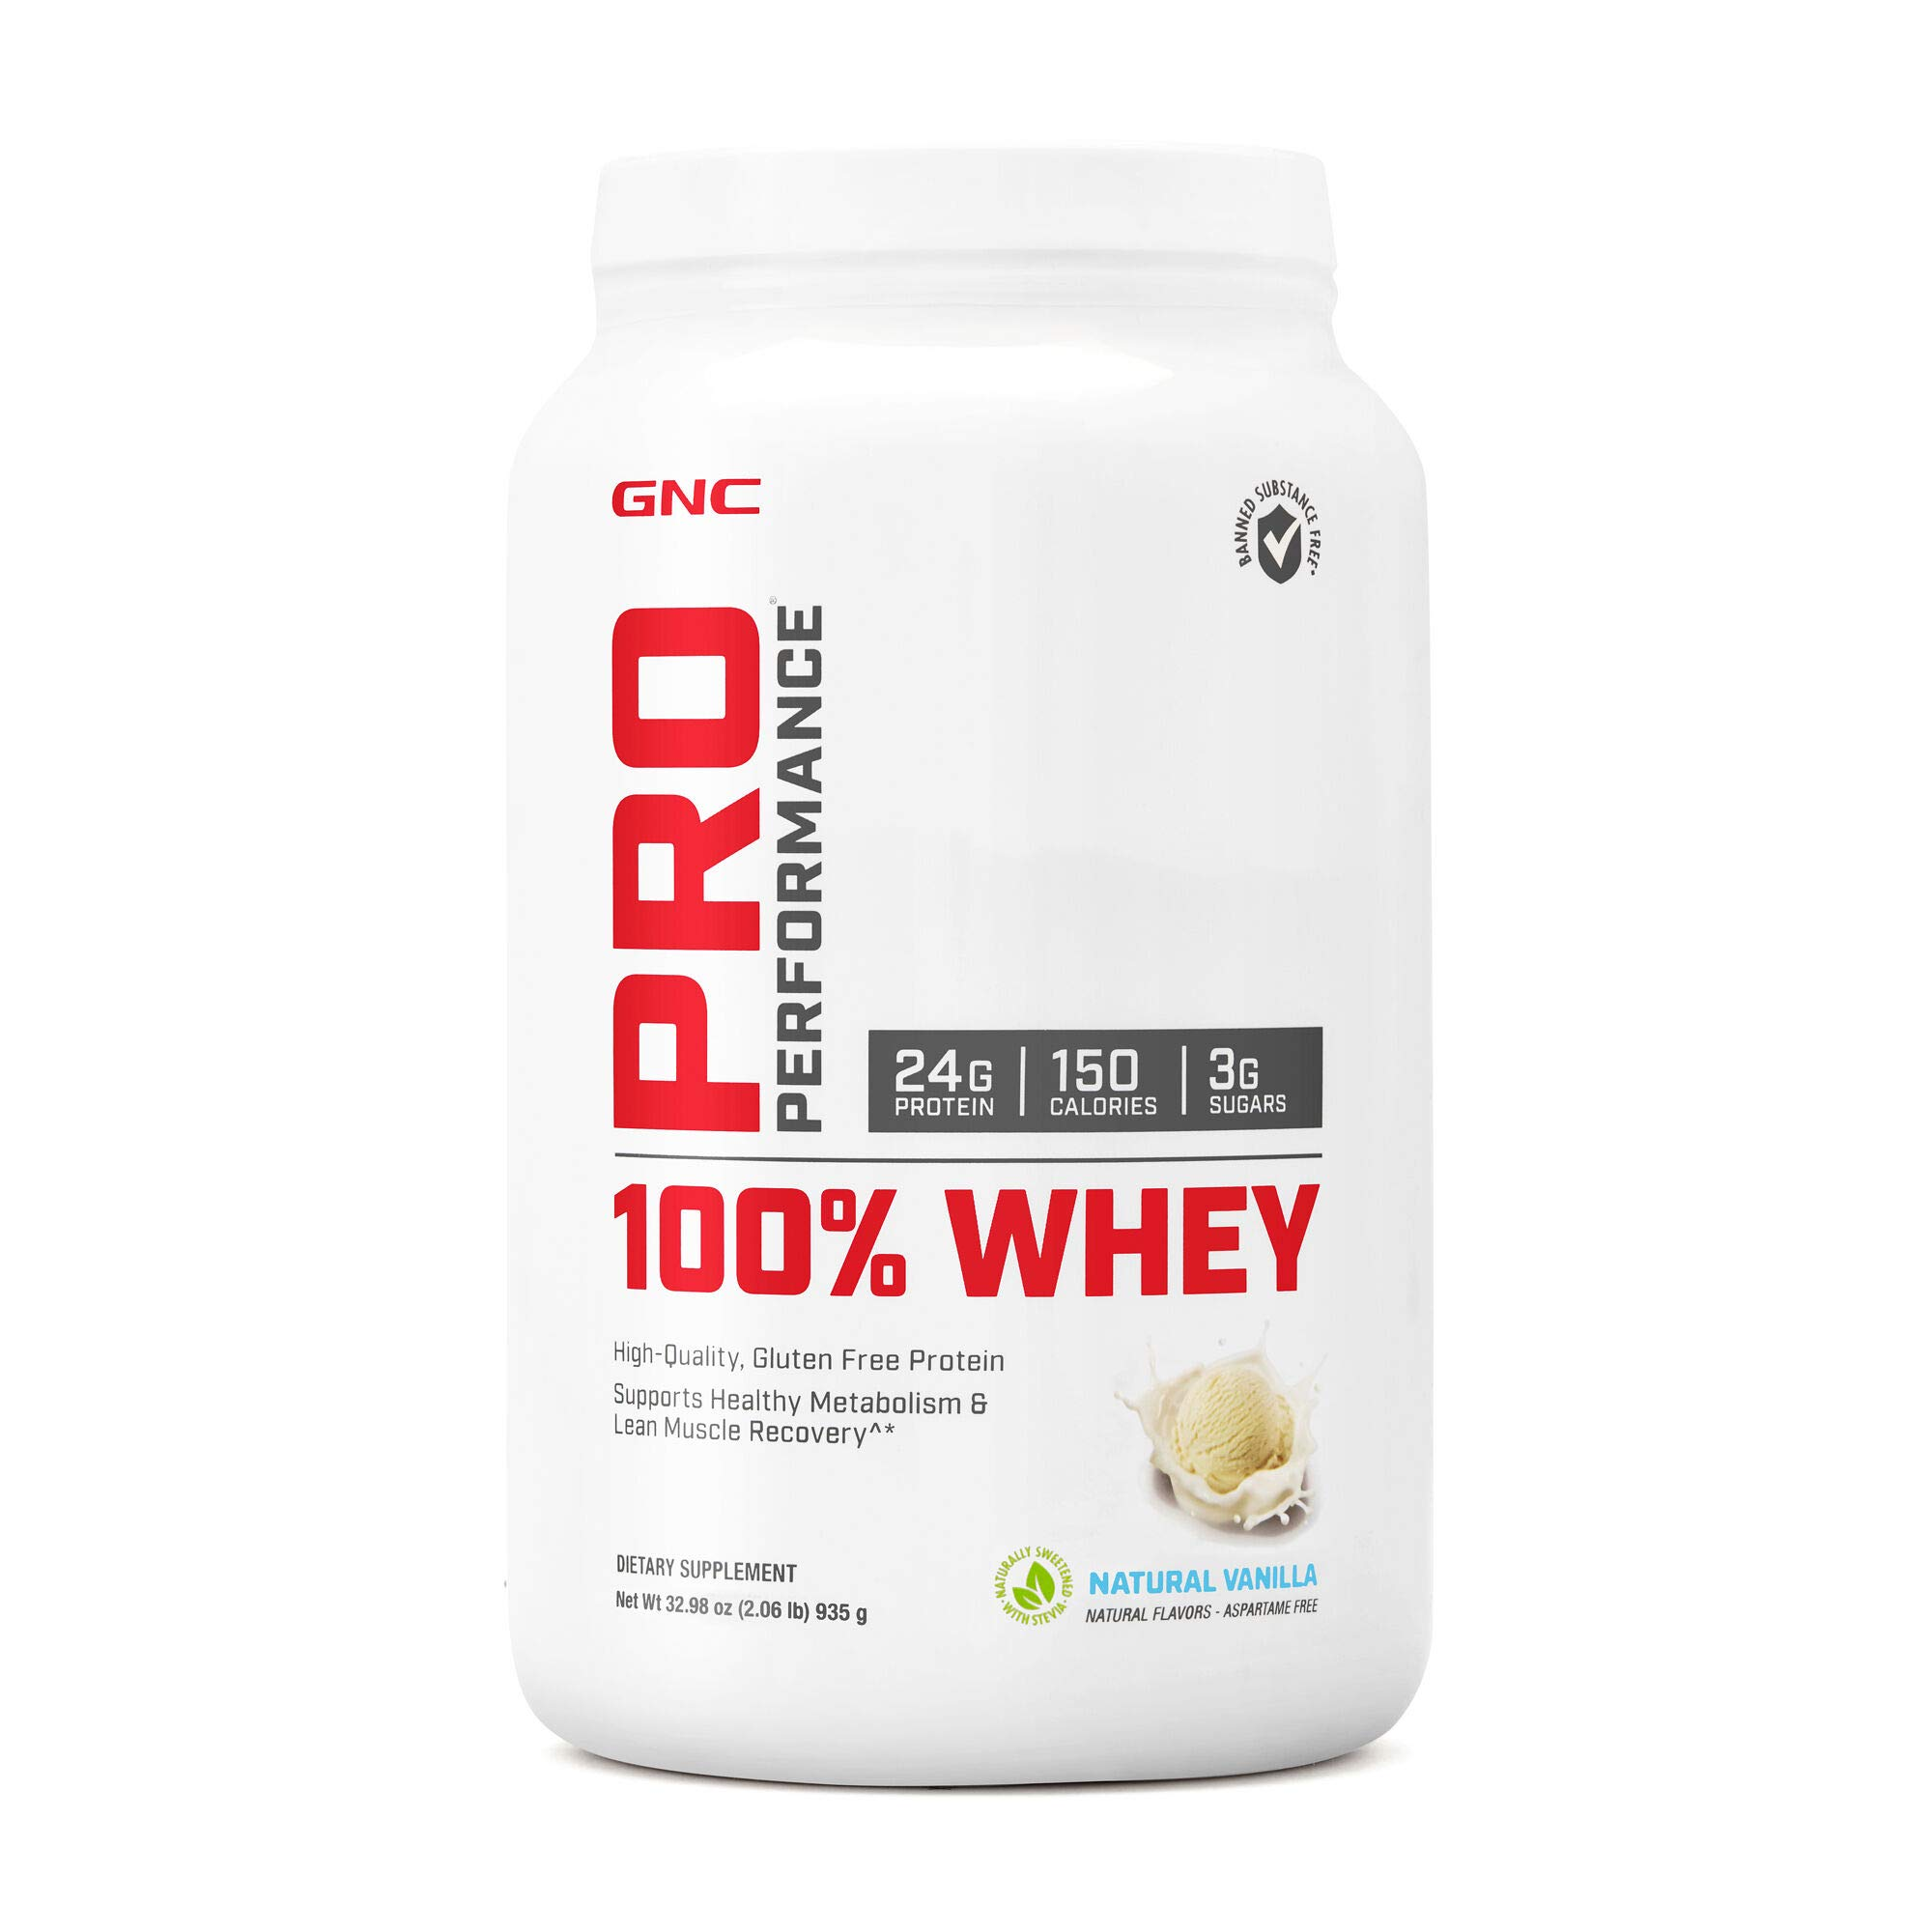 GNC Pro Performance 100% Whey Protein Powder - Vanilla Cream, 25 Servings, Supports Healthy Metabolism and Lean Muscle Recovery